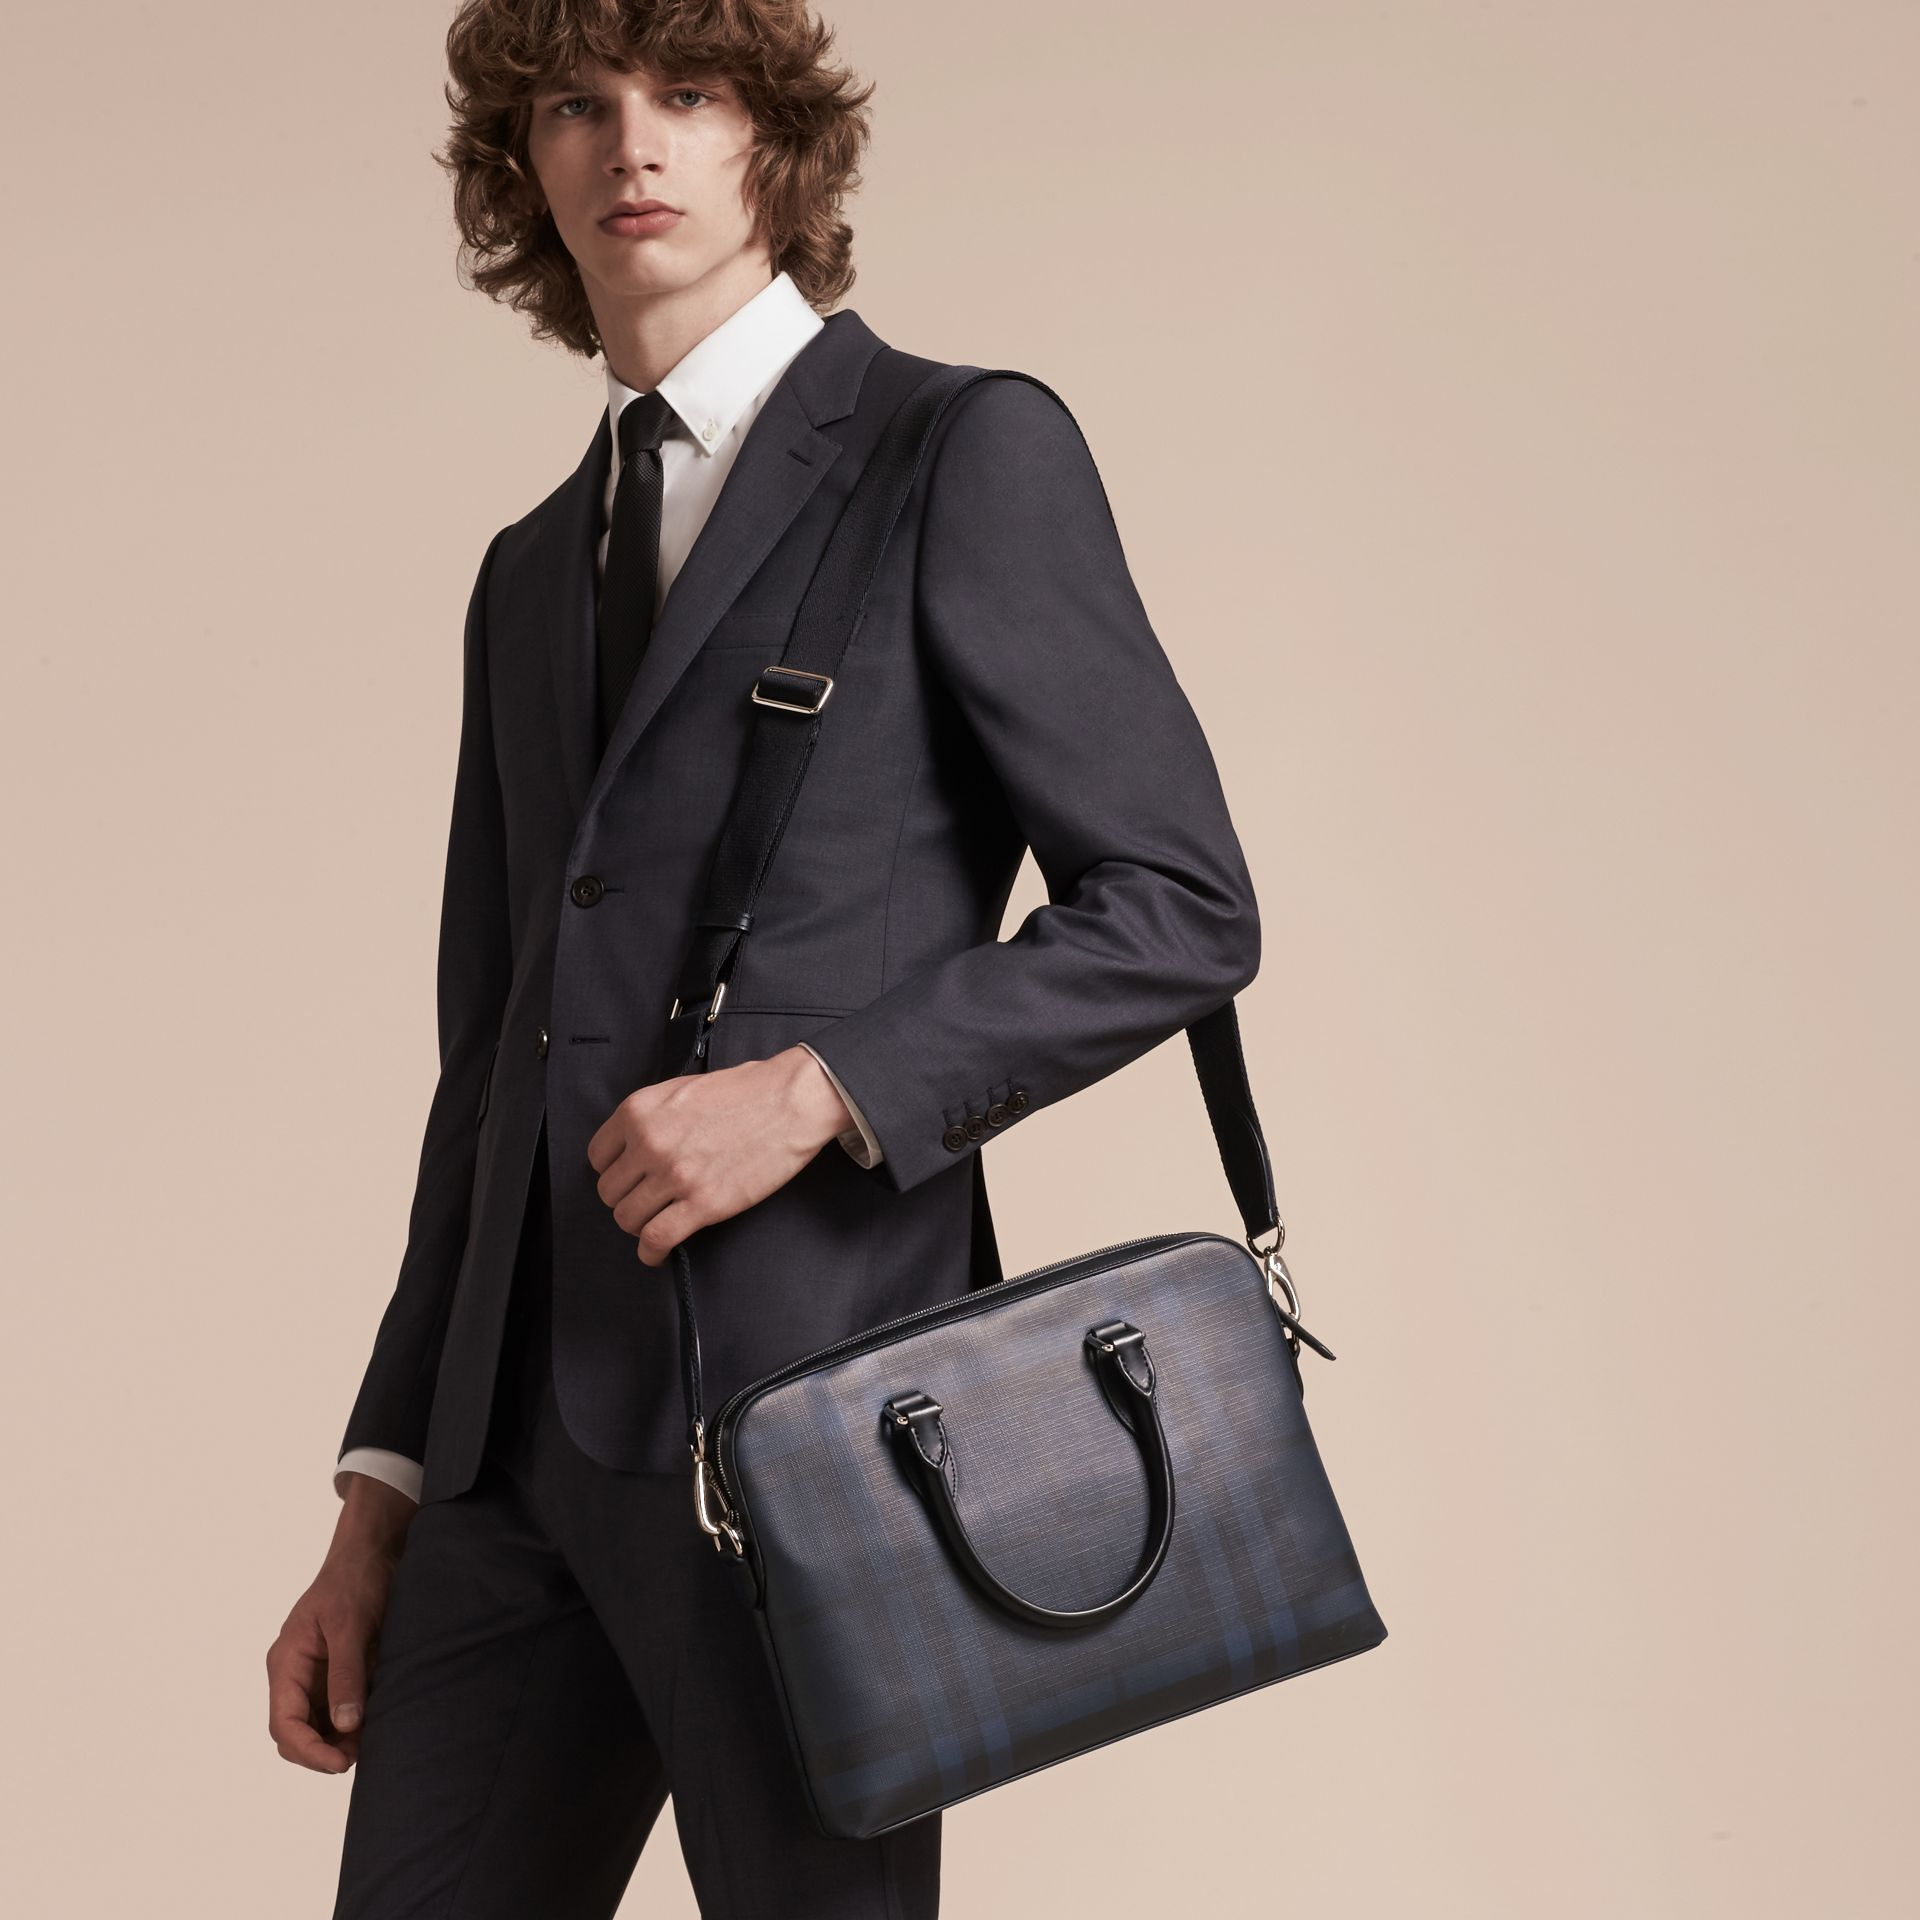 Sac The Barrow fin avec motif London check (Marine/noir) - Homme | Burberry - photo de la galerie 3